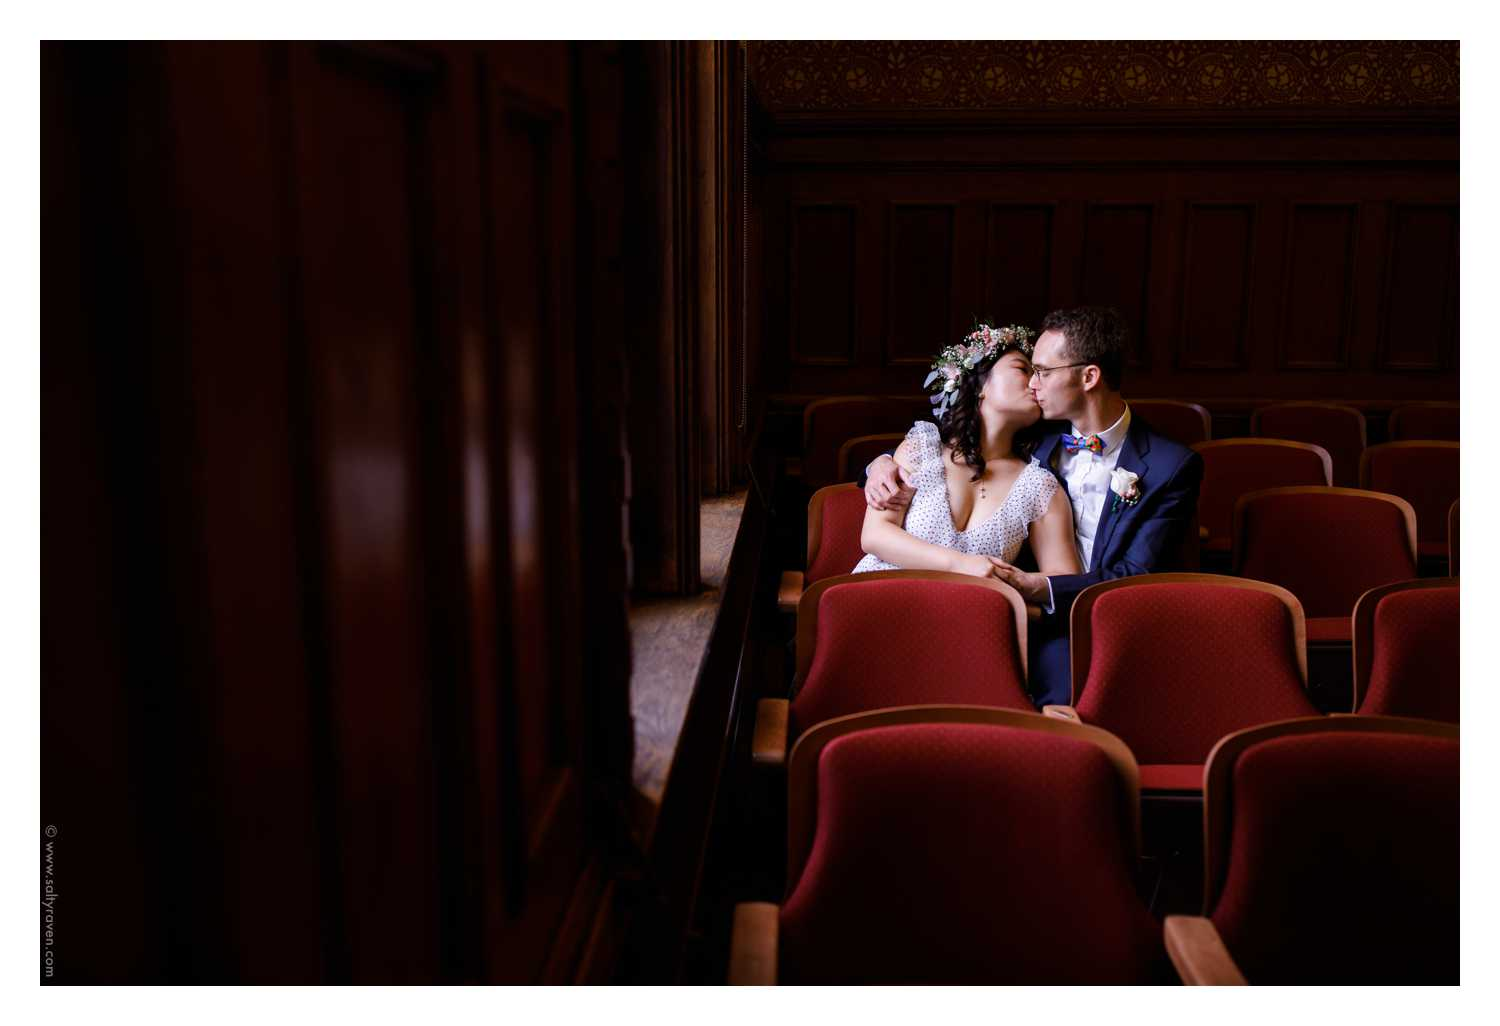 The couple steals a kiss in the red seats near a window at their Cambridge City Hall Wedding.